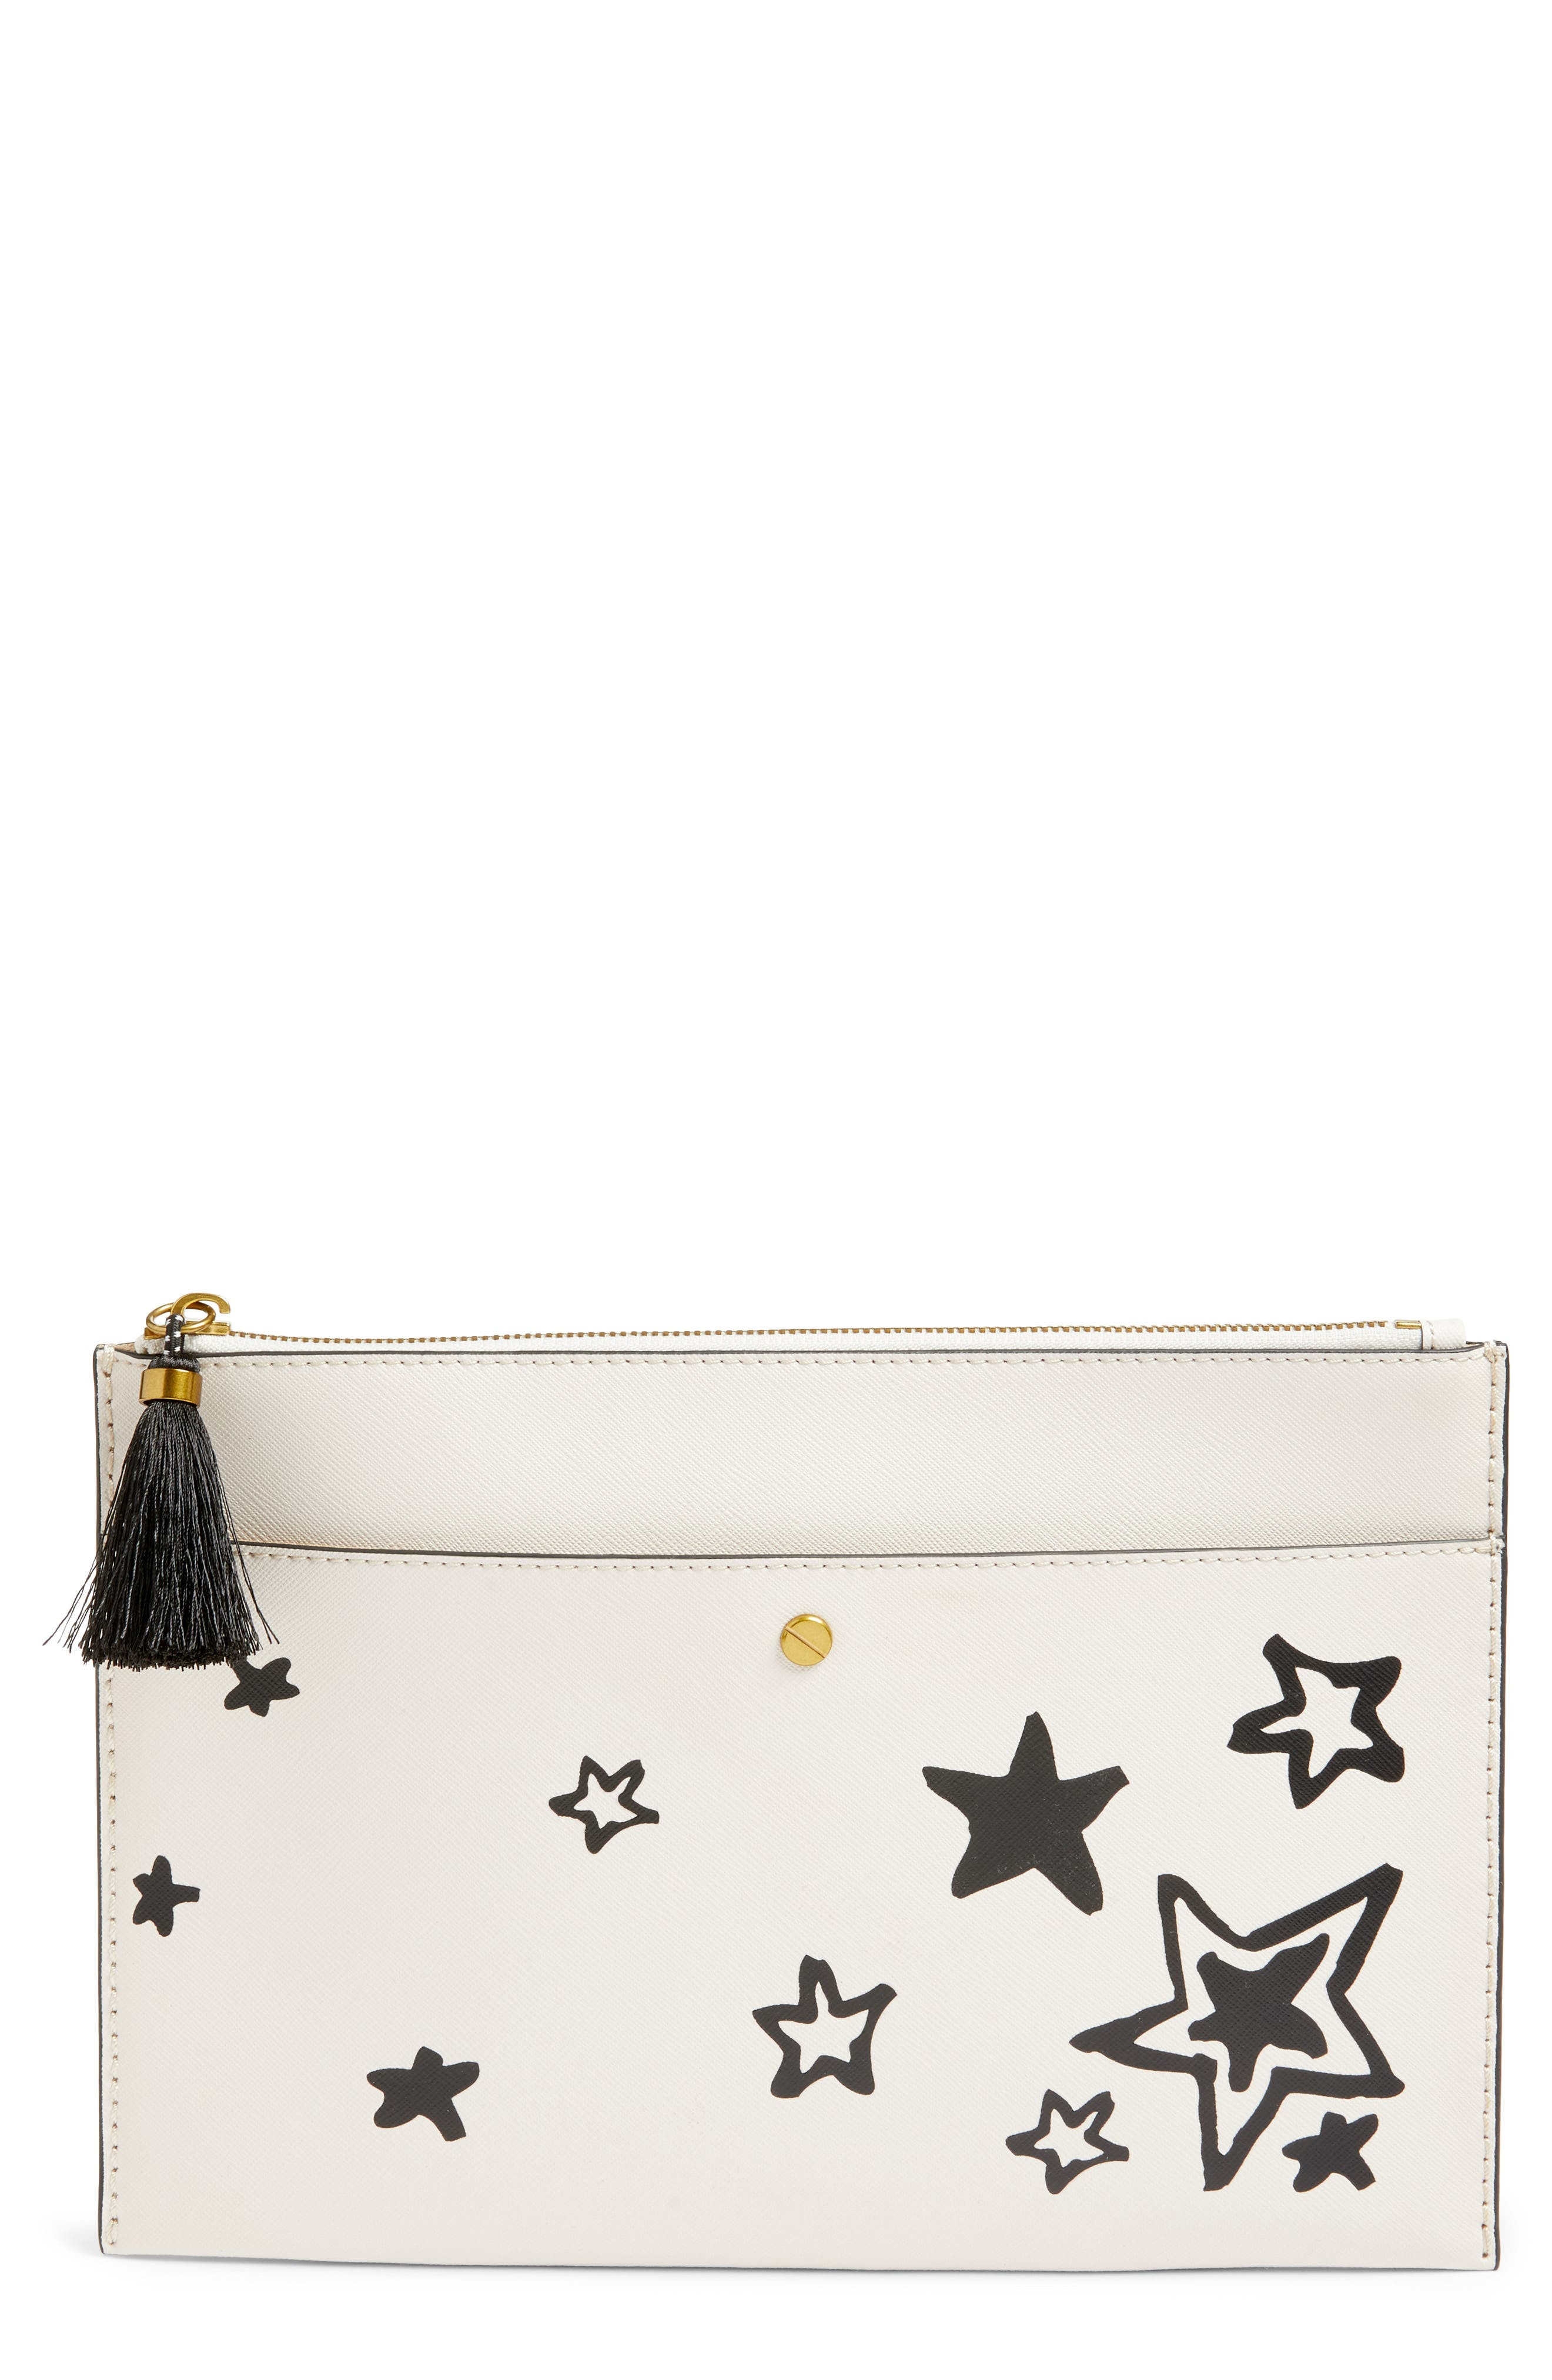 Alternate Image 1 Selected - J.Crew Large Star Print Pouch